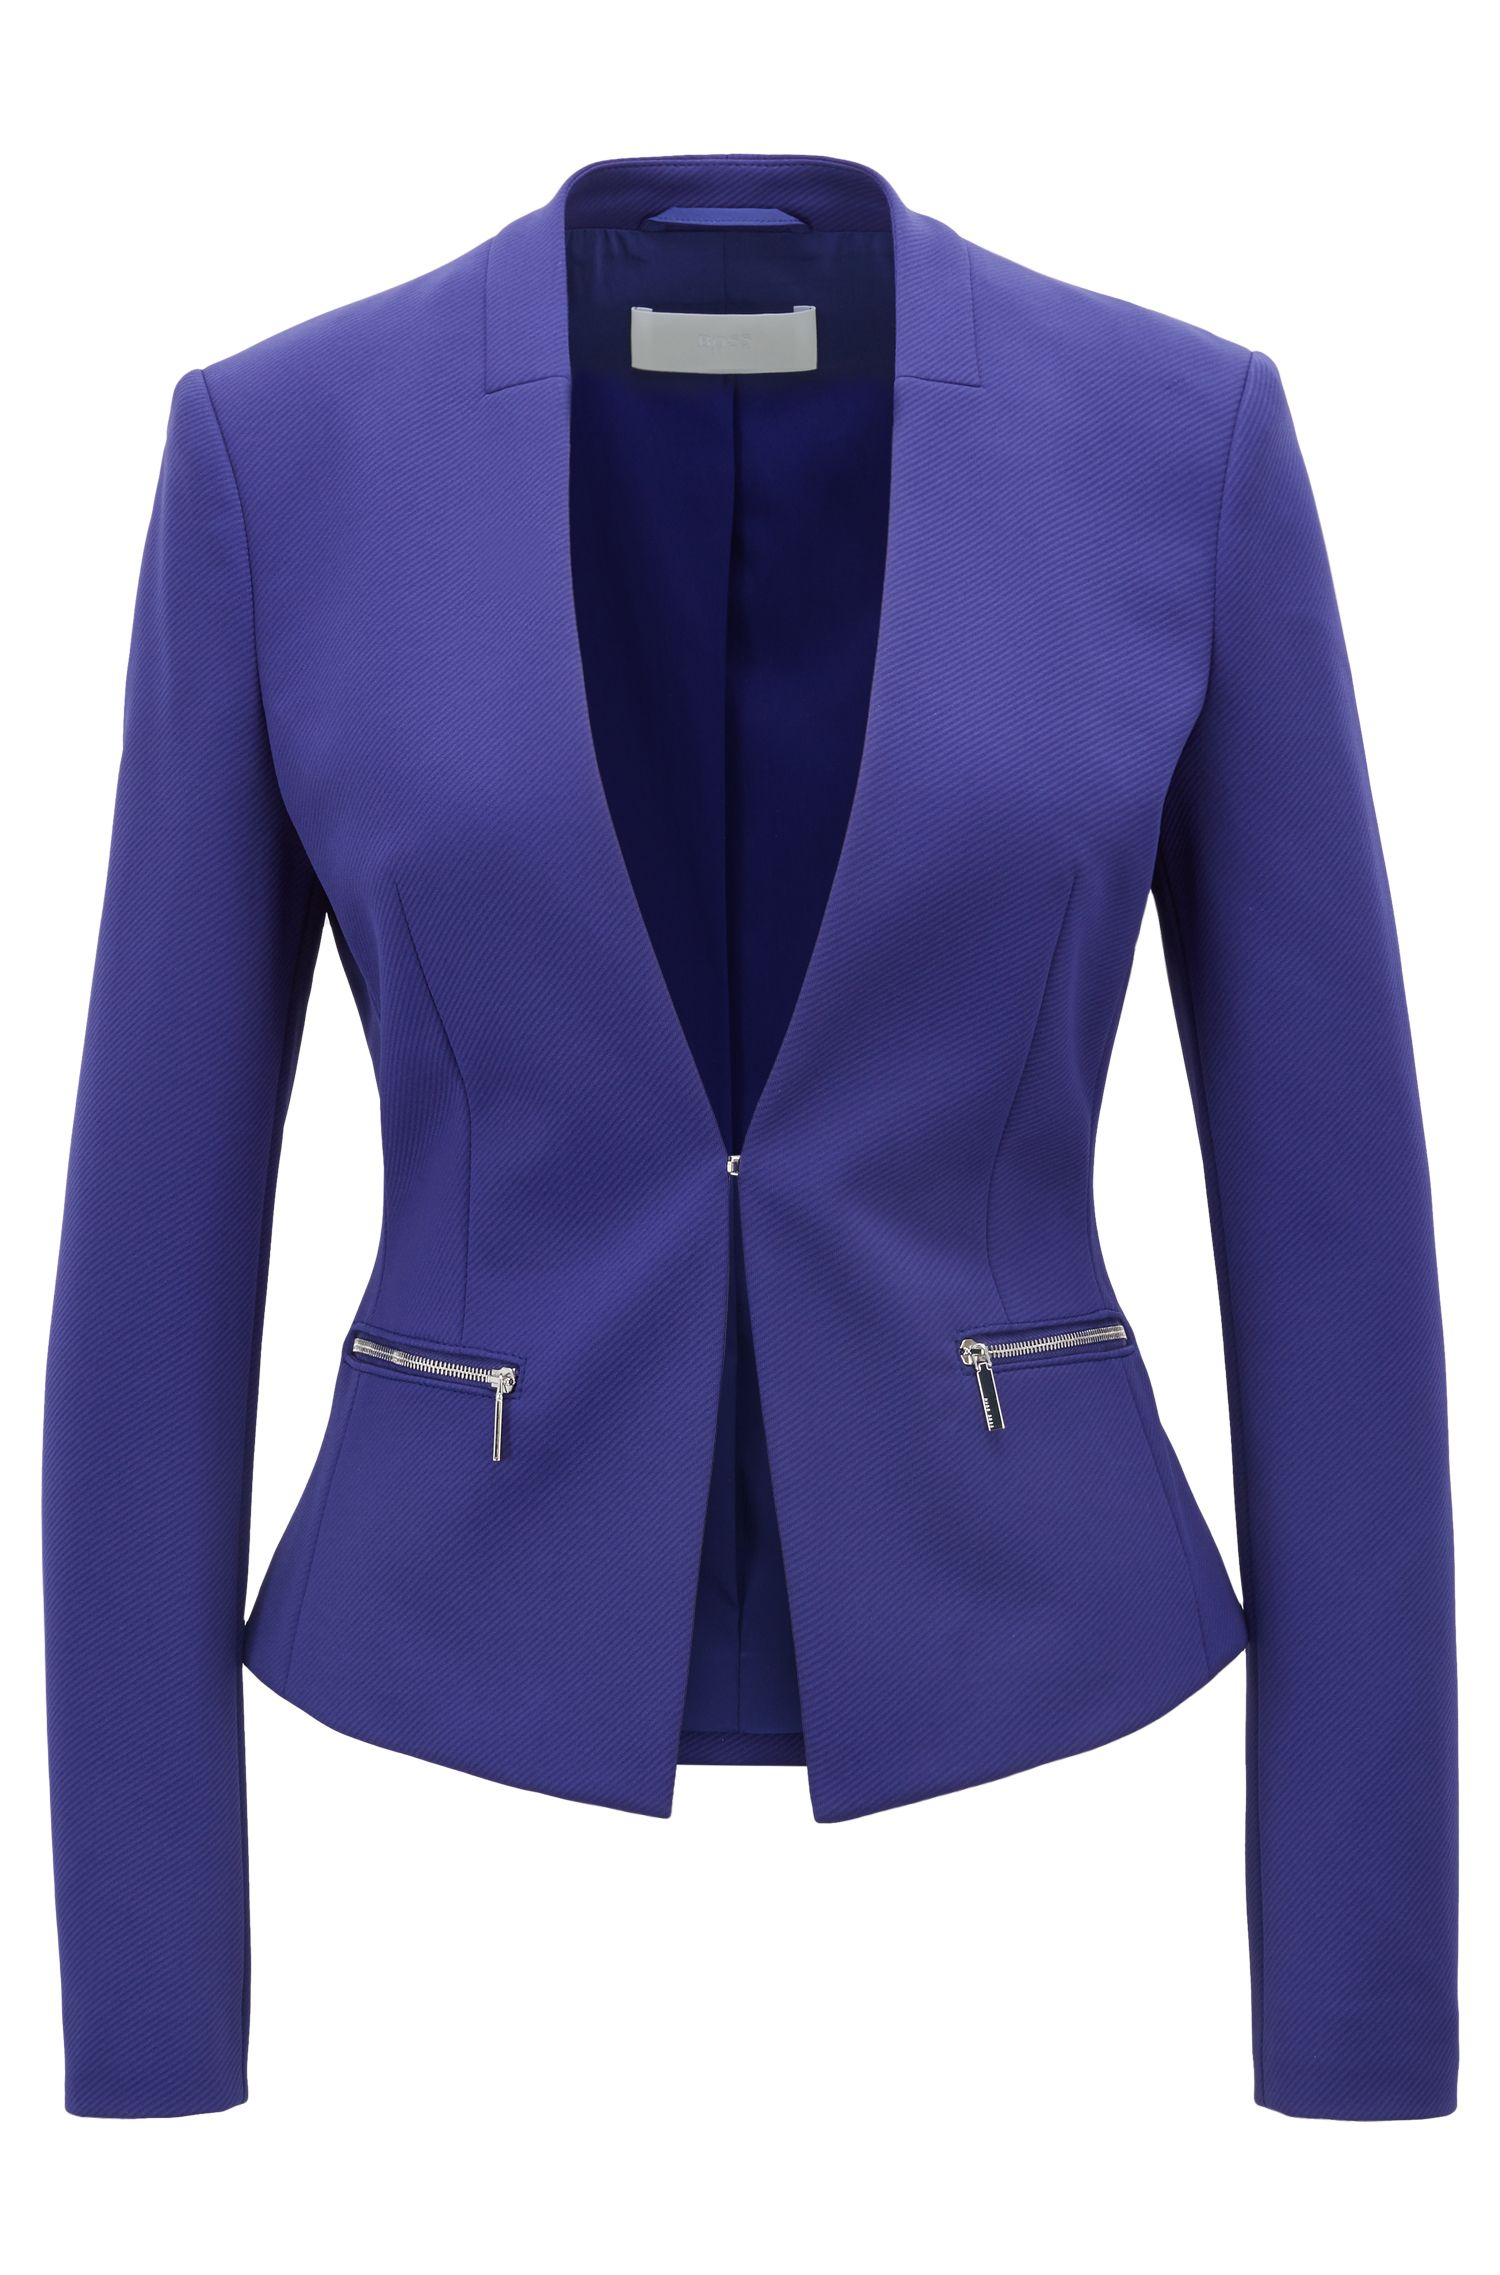 Slim-fit twill jacket with zippered pockets